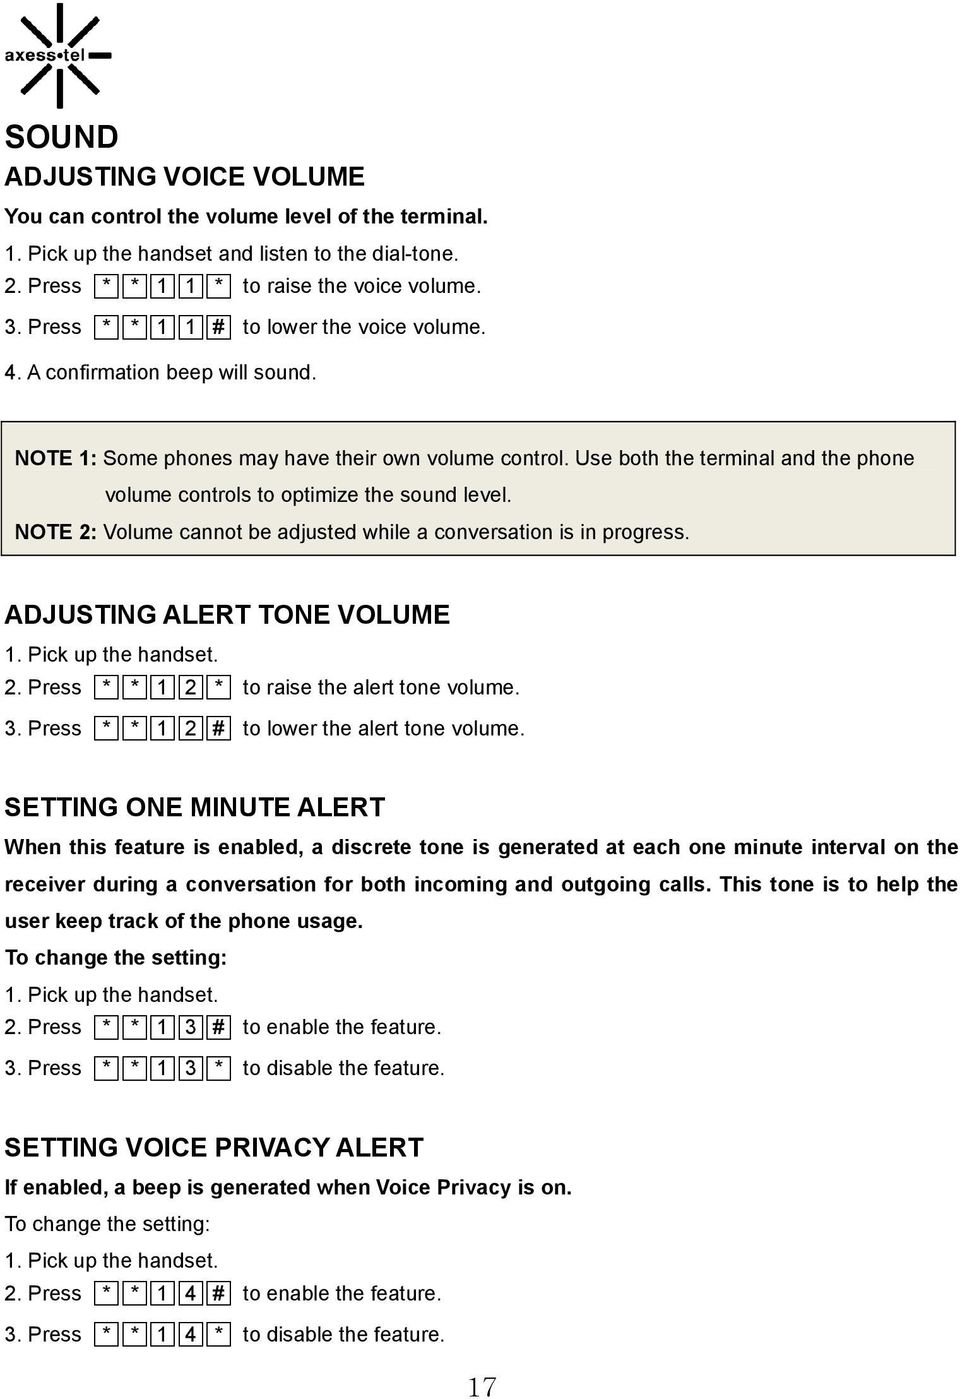 volume controls to optimize the sound level. NOTE 2: Volume cannot be adjusted while a conversation is in progress. ADJUSTING ALERT TONE VOLUME 1. Pick up the handset. 2. Press * * 1 2 * to raise the alert tone volume.